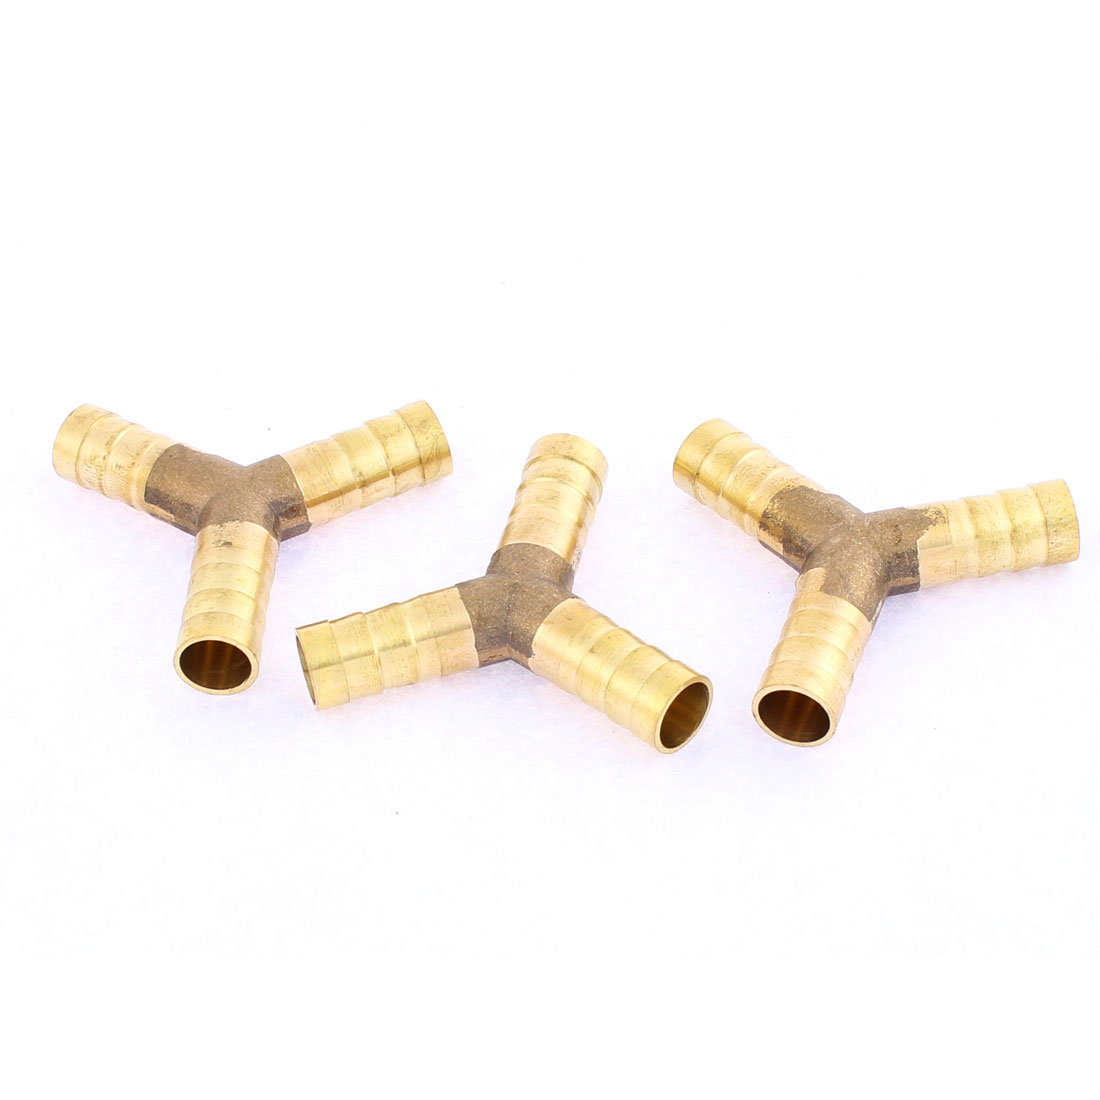 Brass Y Shape 3 Way Hose Barb Coupler Connector 10mm Dia 3 Pcs